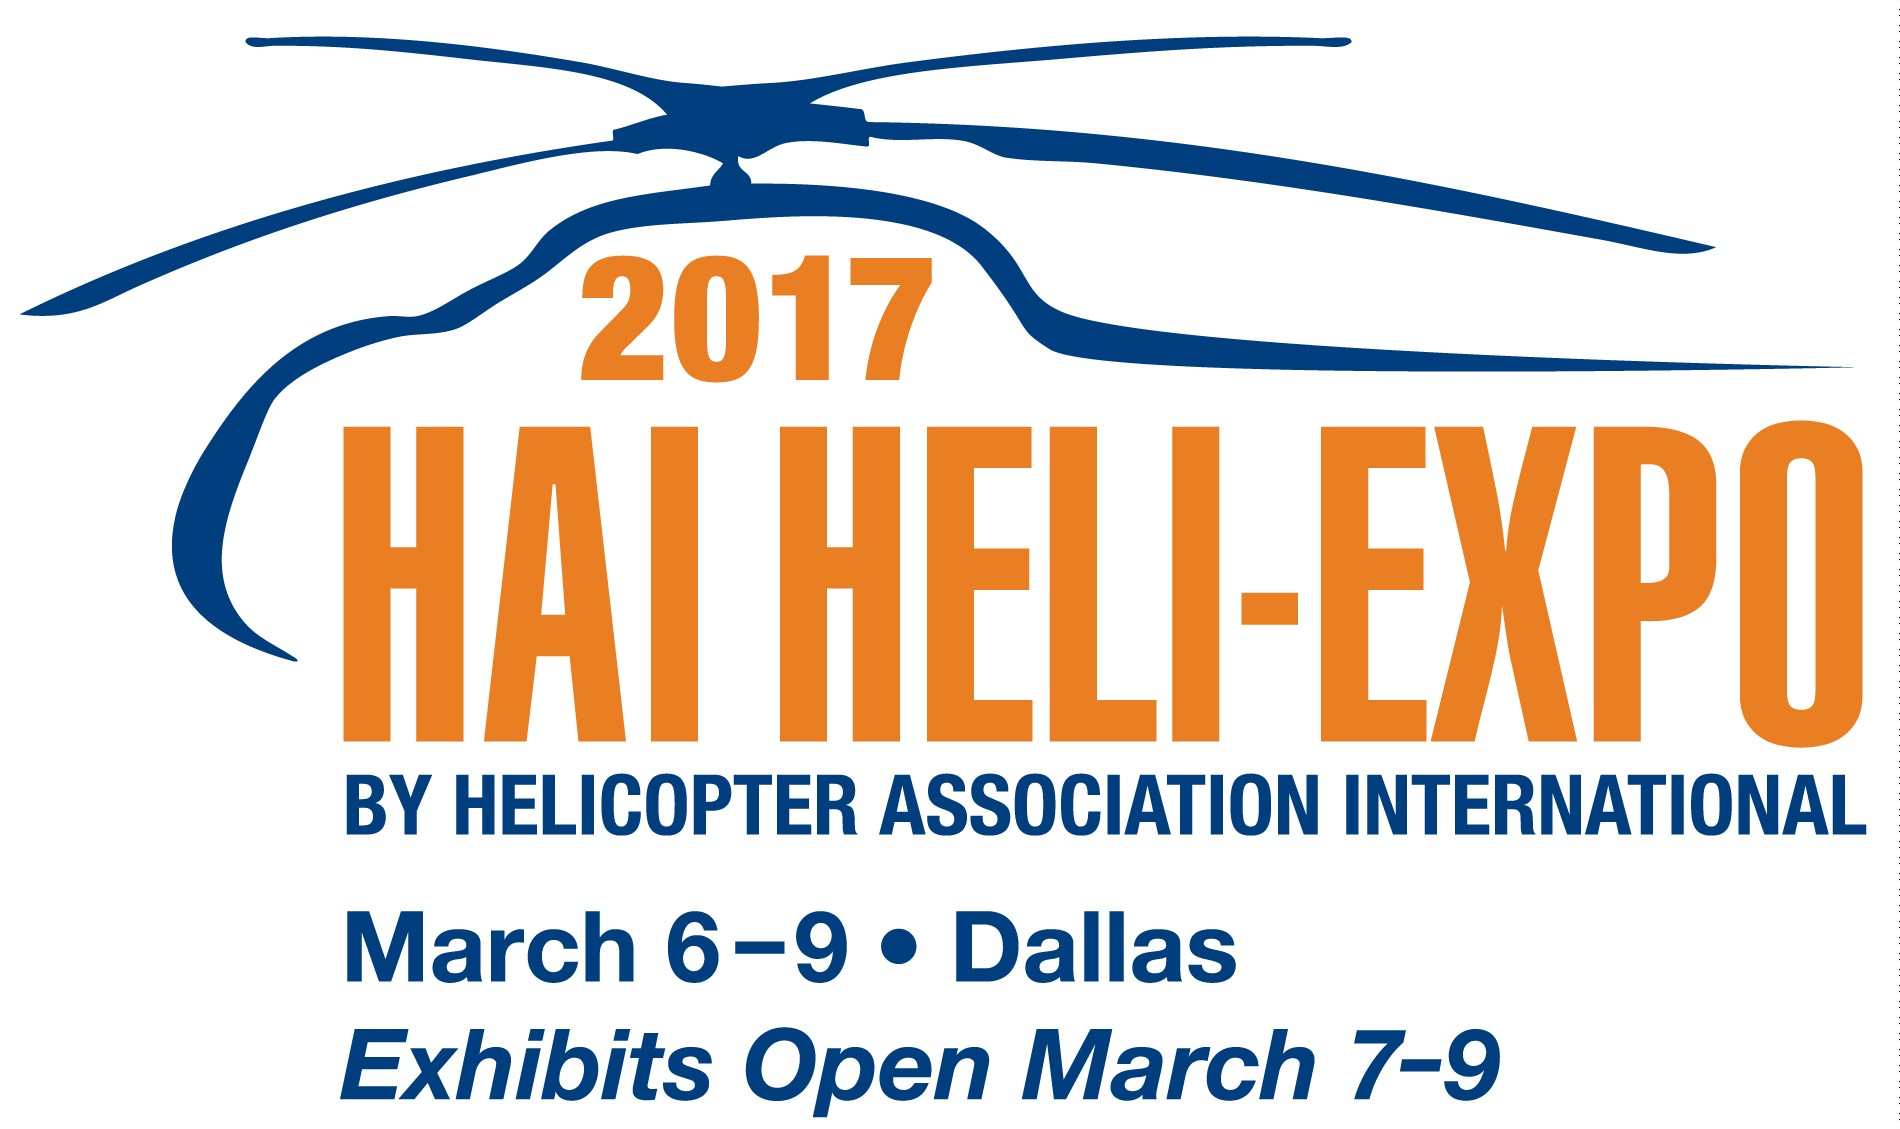 Laselec Inc at Heli Expo 2017 laselec at hai heli expo 2017 convention and trade show laselec wire harness expo 2017 at bayanpartner.co